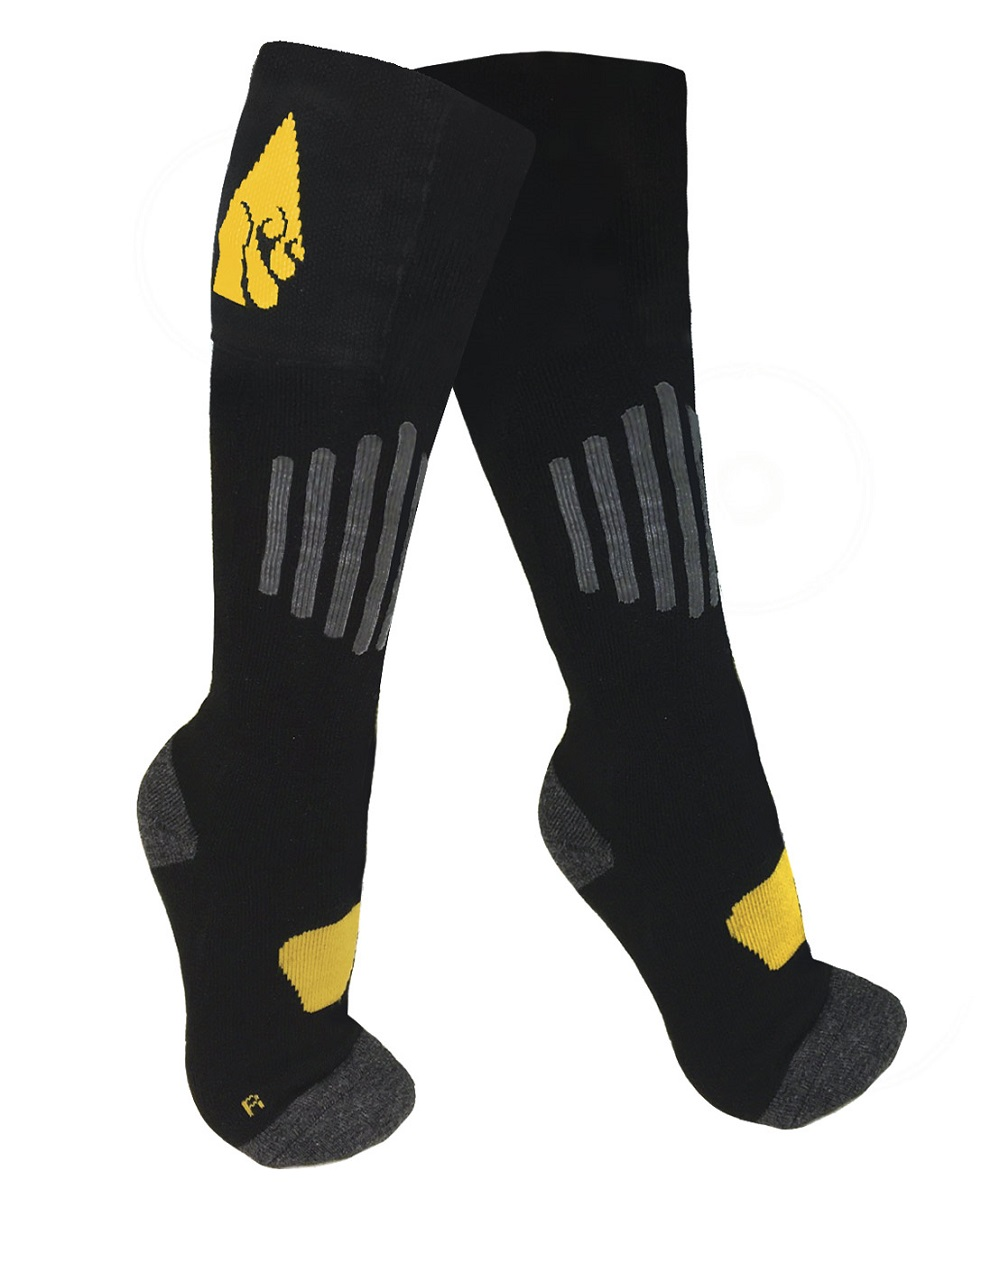 The ActionHeat battery heated socks are the perfect blend of quality and comfort. ActionHeat battery heated apparel utilizes innovative technology designed to warm the core body temperature. These revolutionary garments feature built-in heating panels